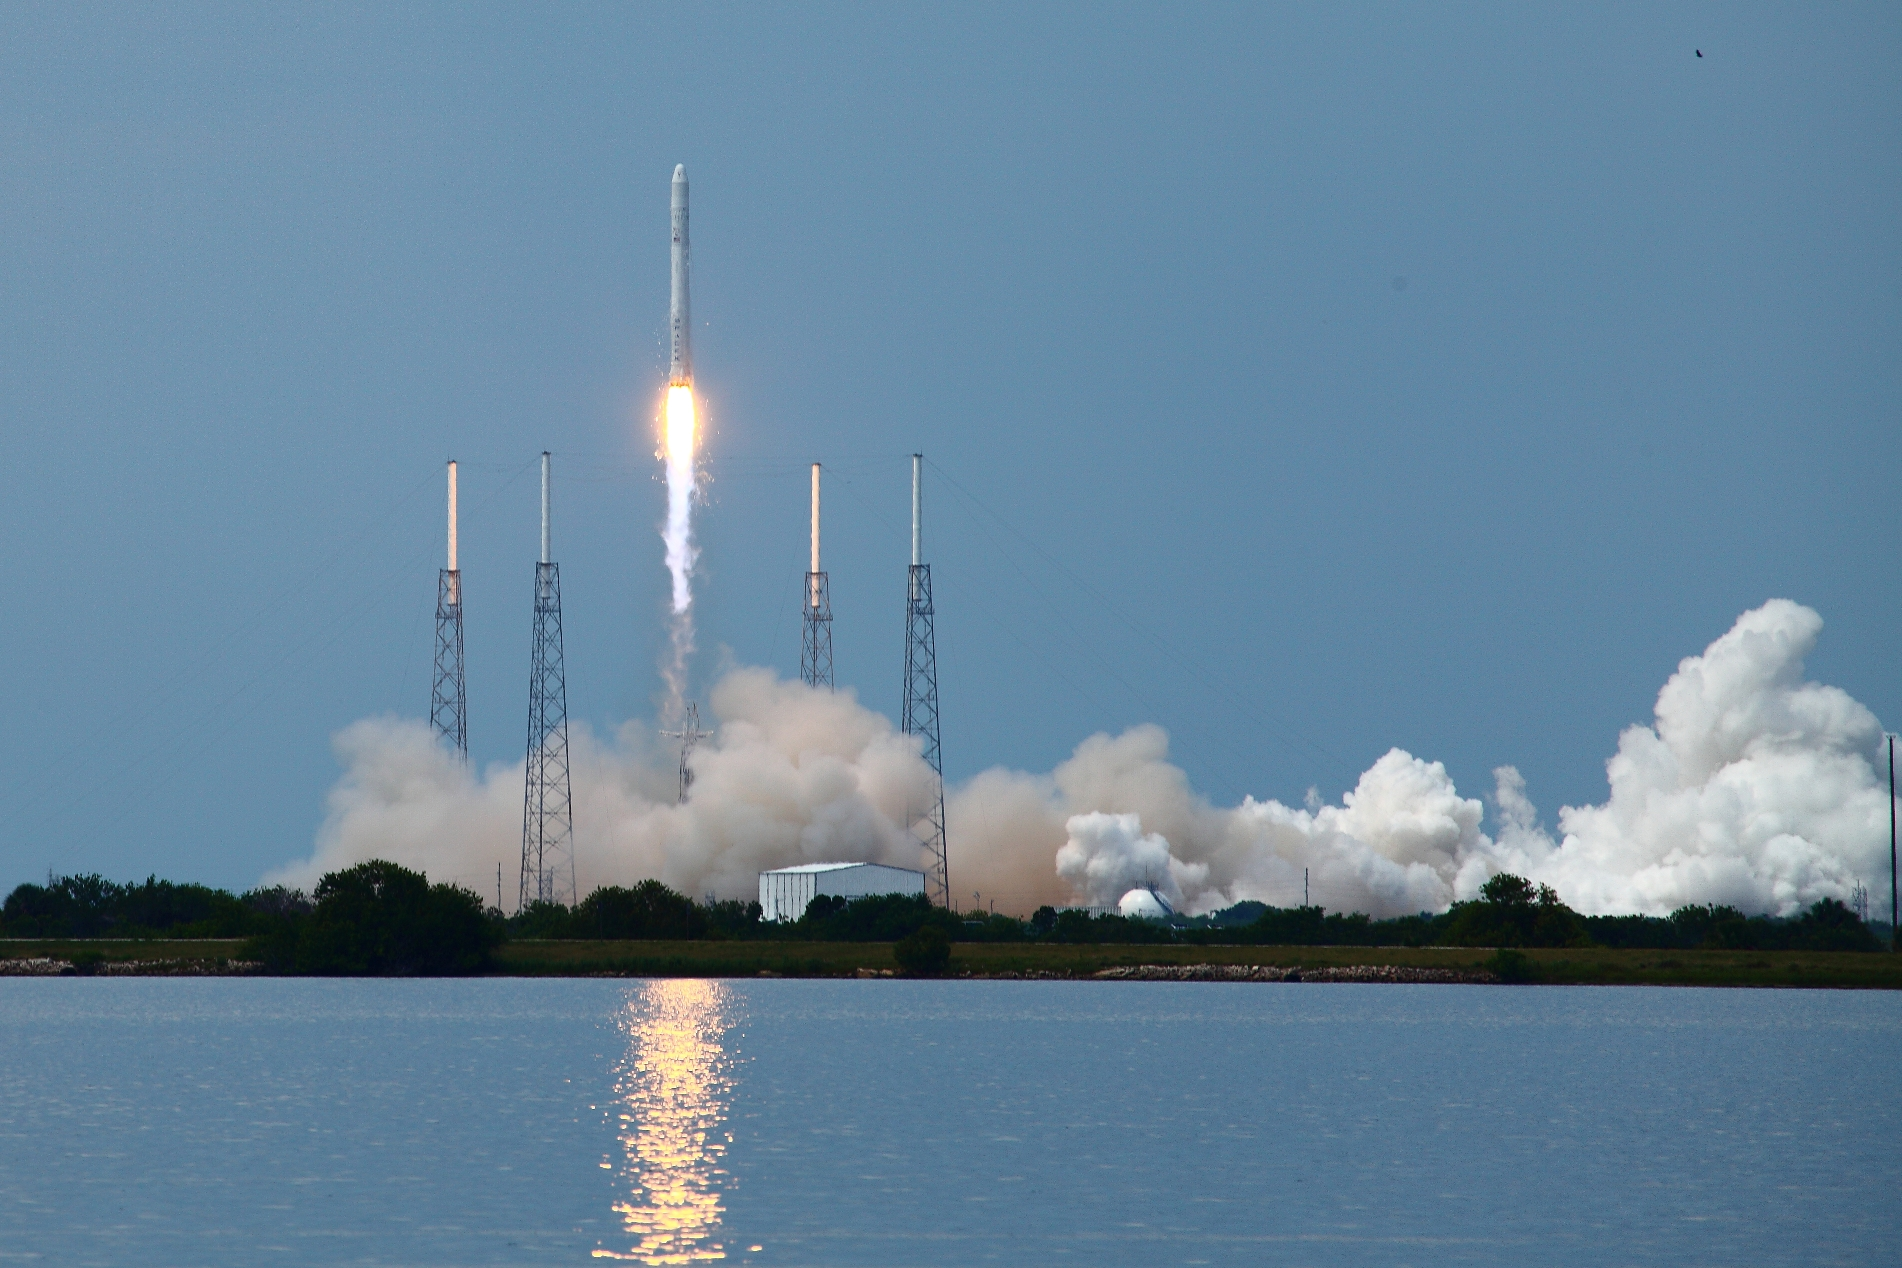 1 americaspace photo of the first flight spacex falcon 9 rocket from cape canaveral air force station space launch complex 40 photo credit alan walters 2